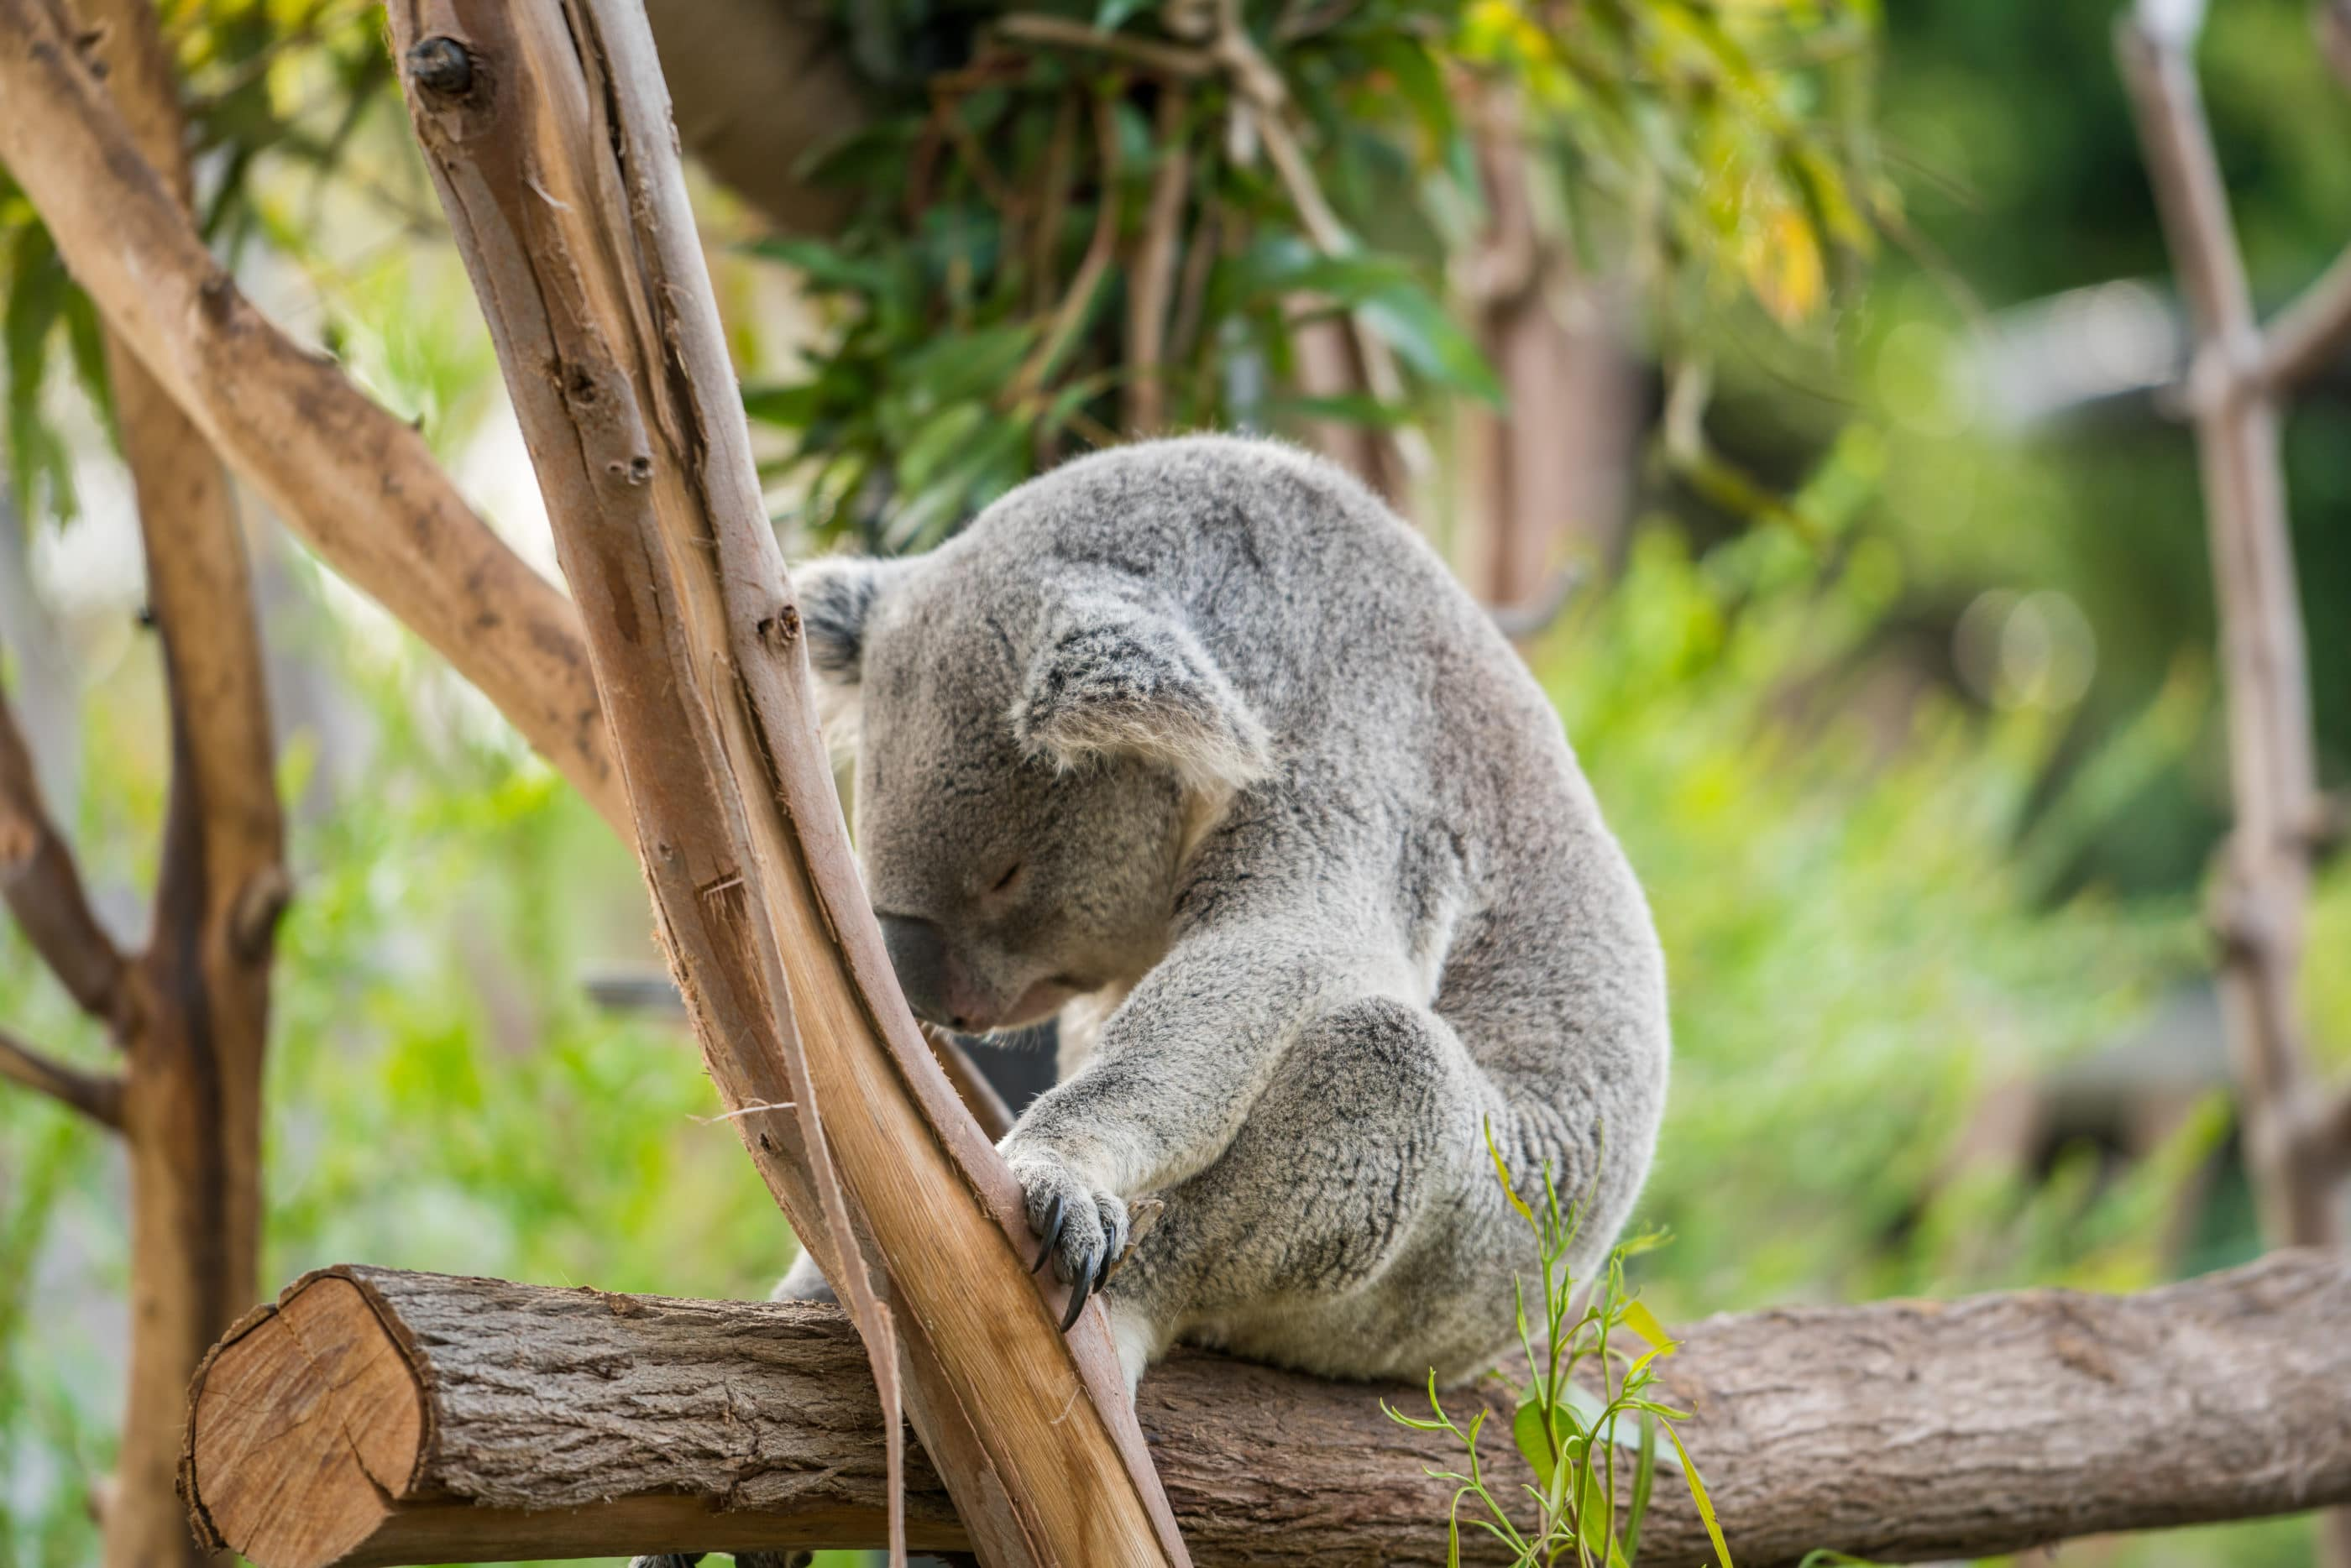 A koala in a tree, a popular sight at San Diego Zoo for kids.